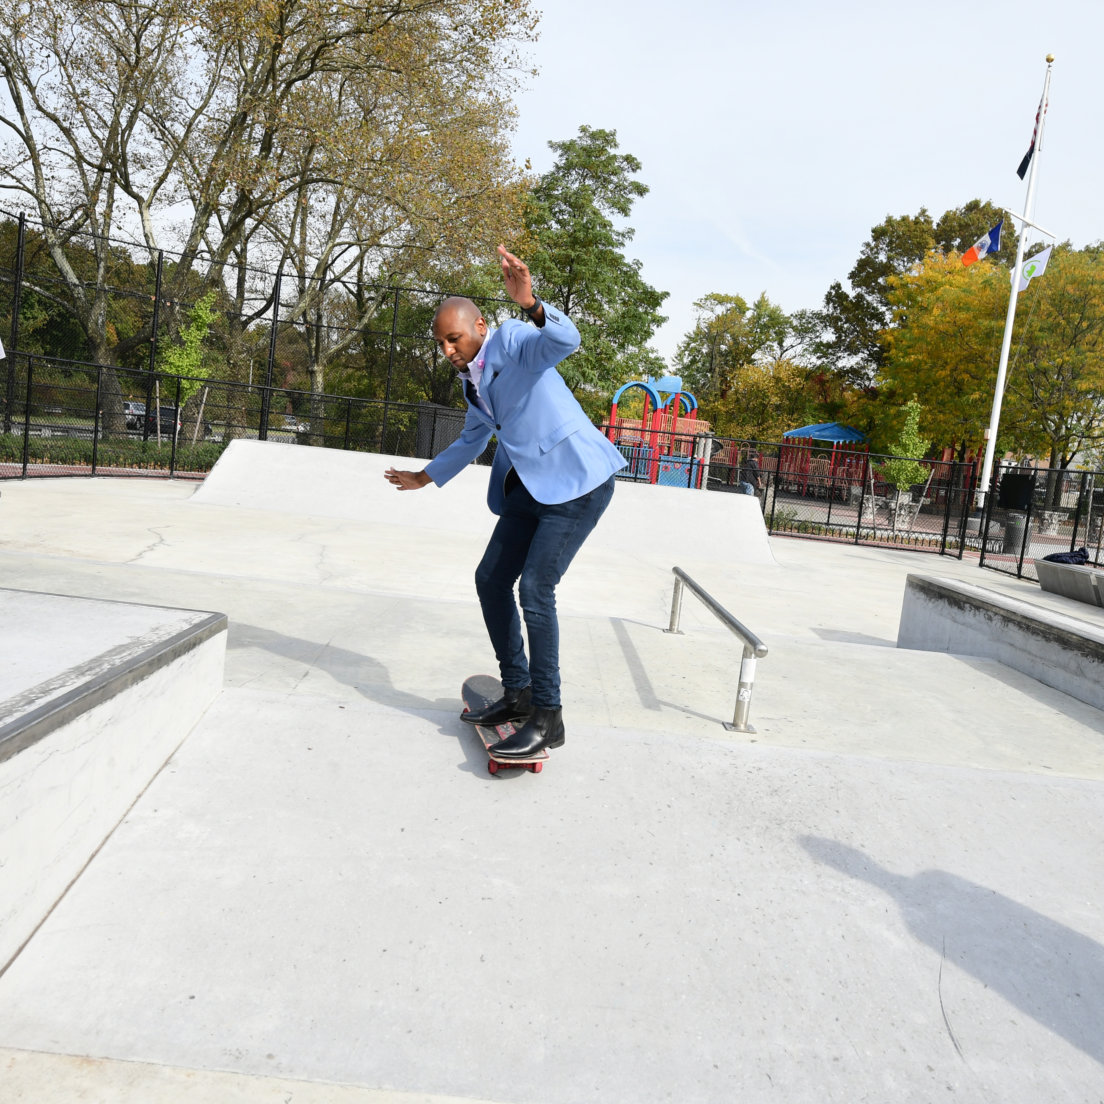 Brand new skate park opens in Laurelton Playground with ribbon-cutting ceremony